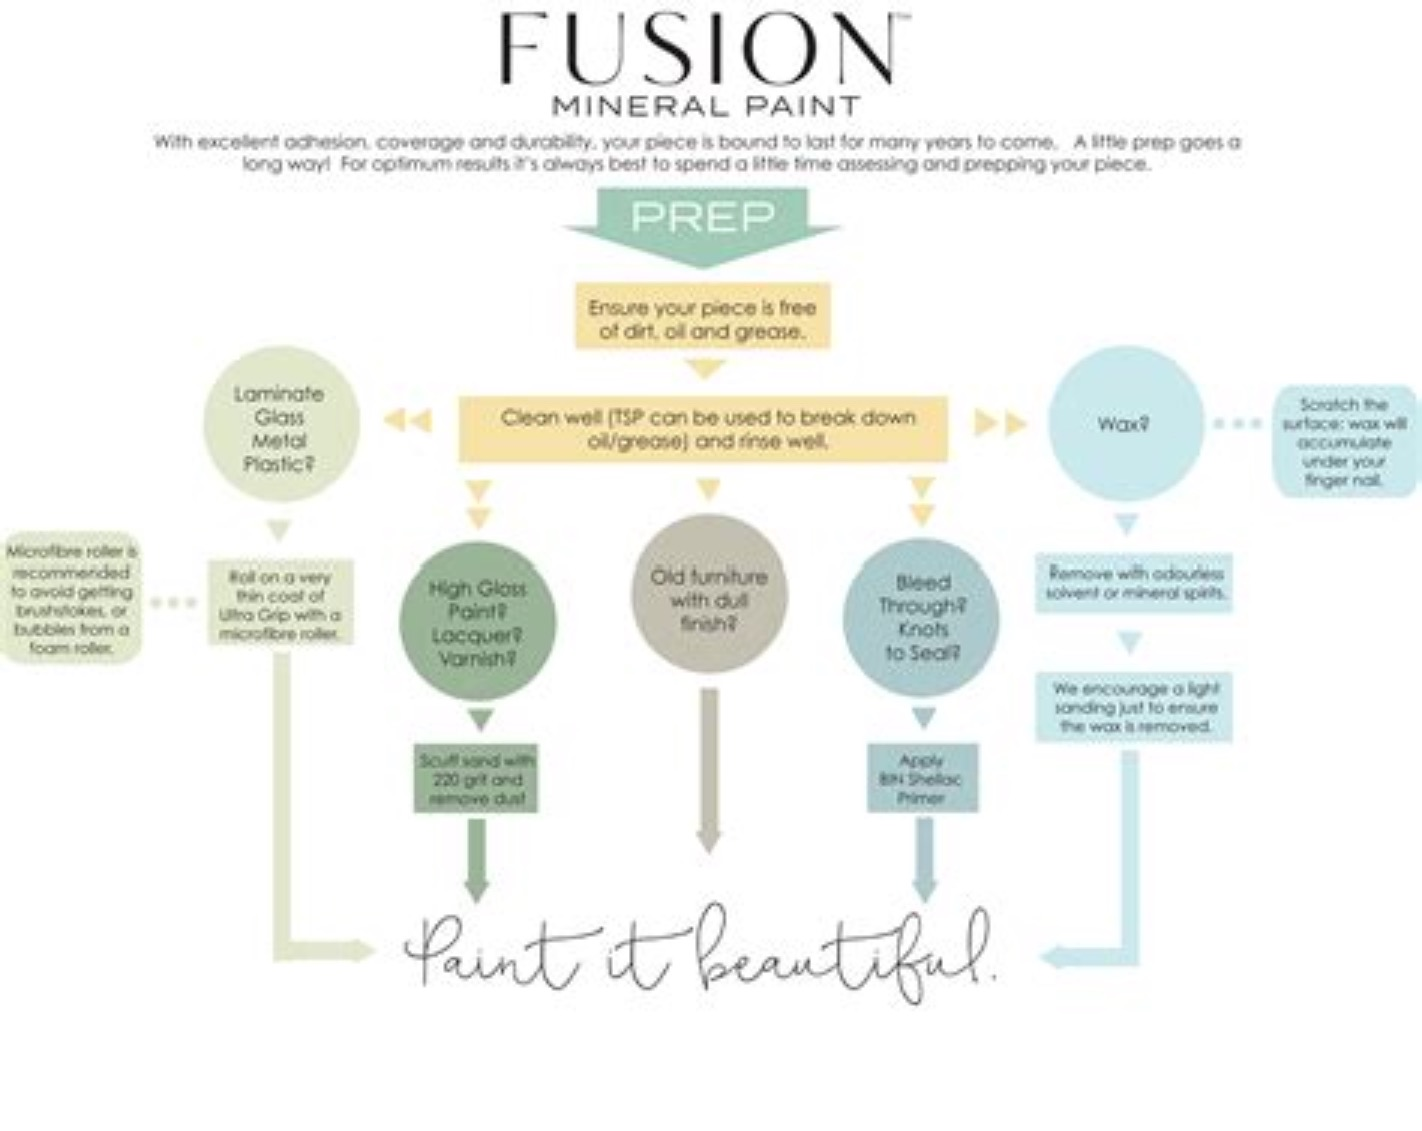 Fusion Preparation Products / Forberedelse